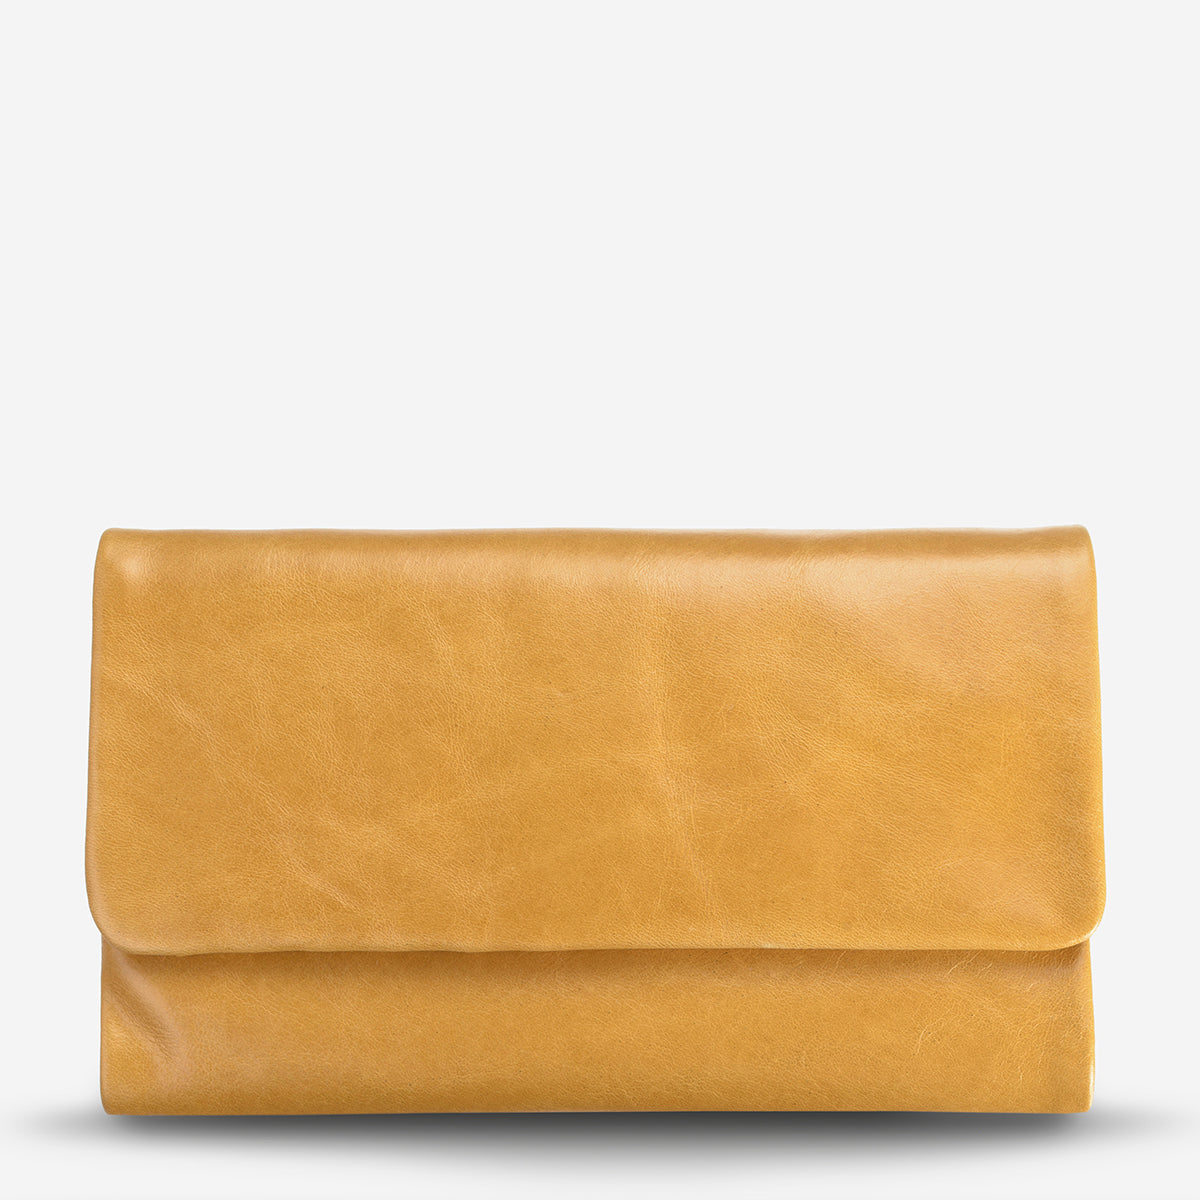 Status Anxiety Audrey Leather Wallet - Tan